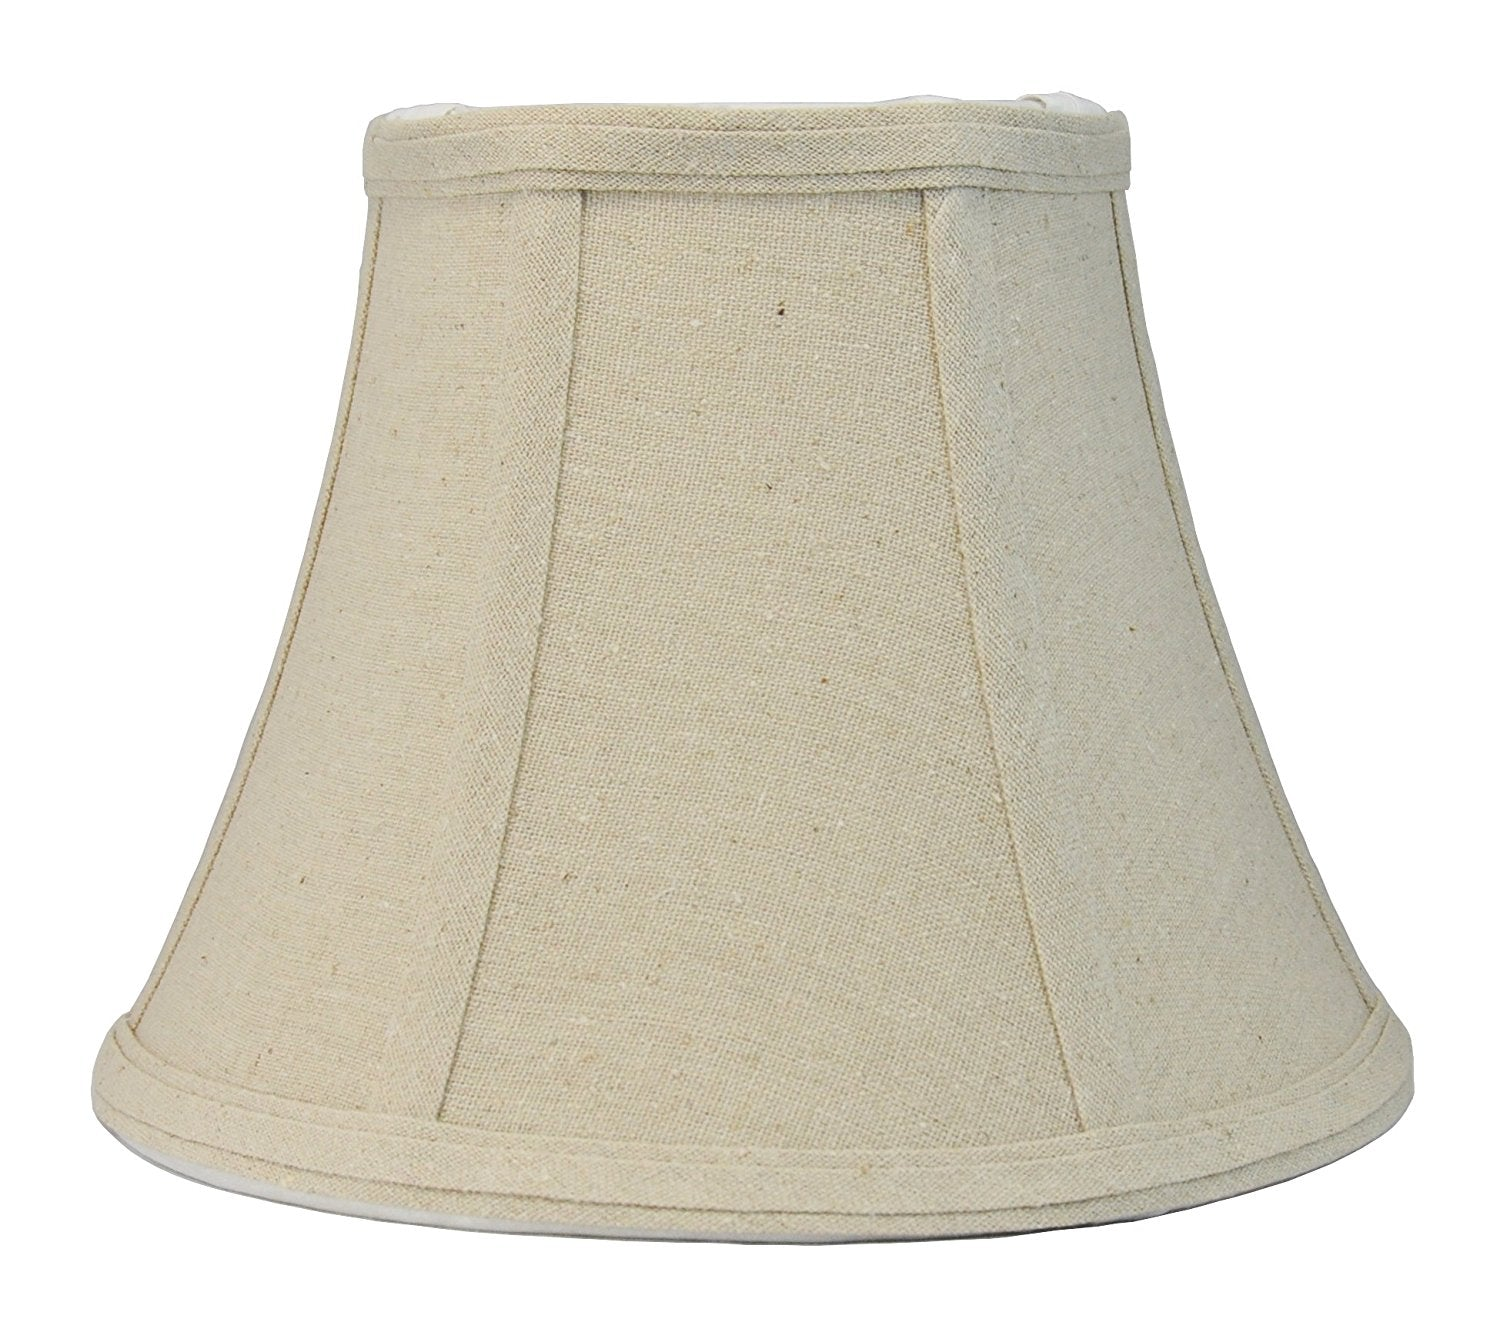 "Softback Bell Lampshade, Natural Linen, 5x9x7"", Spider Fitter"